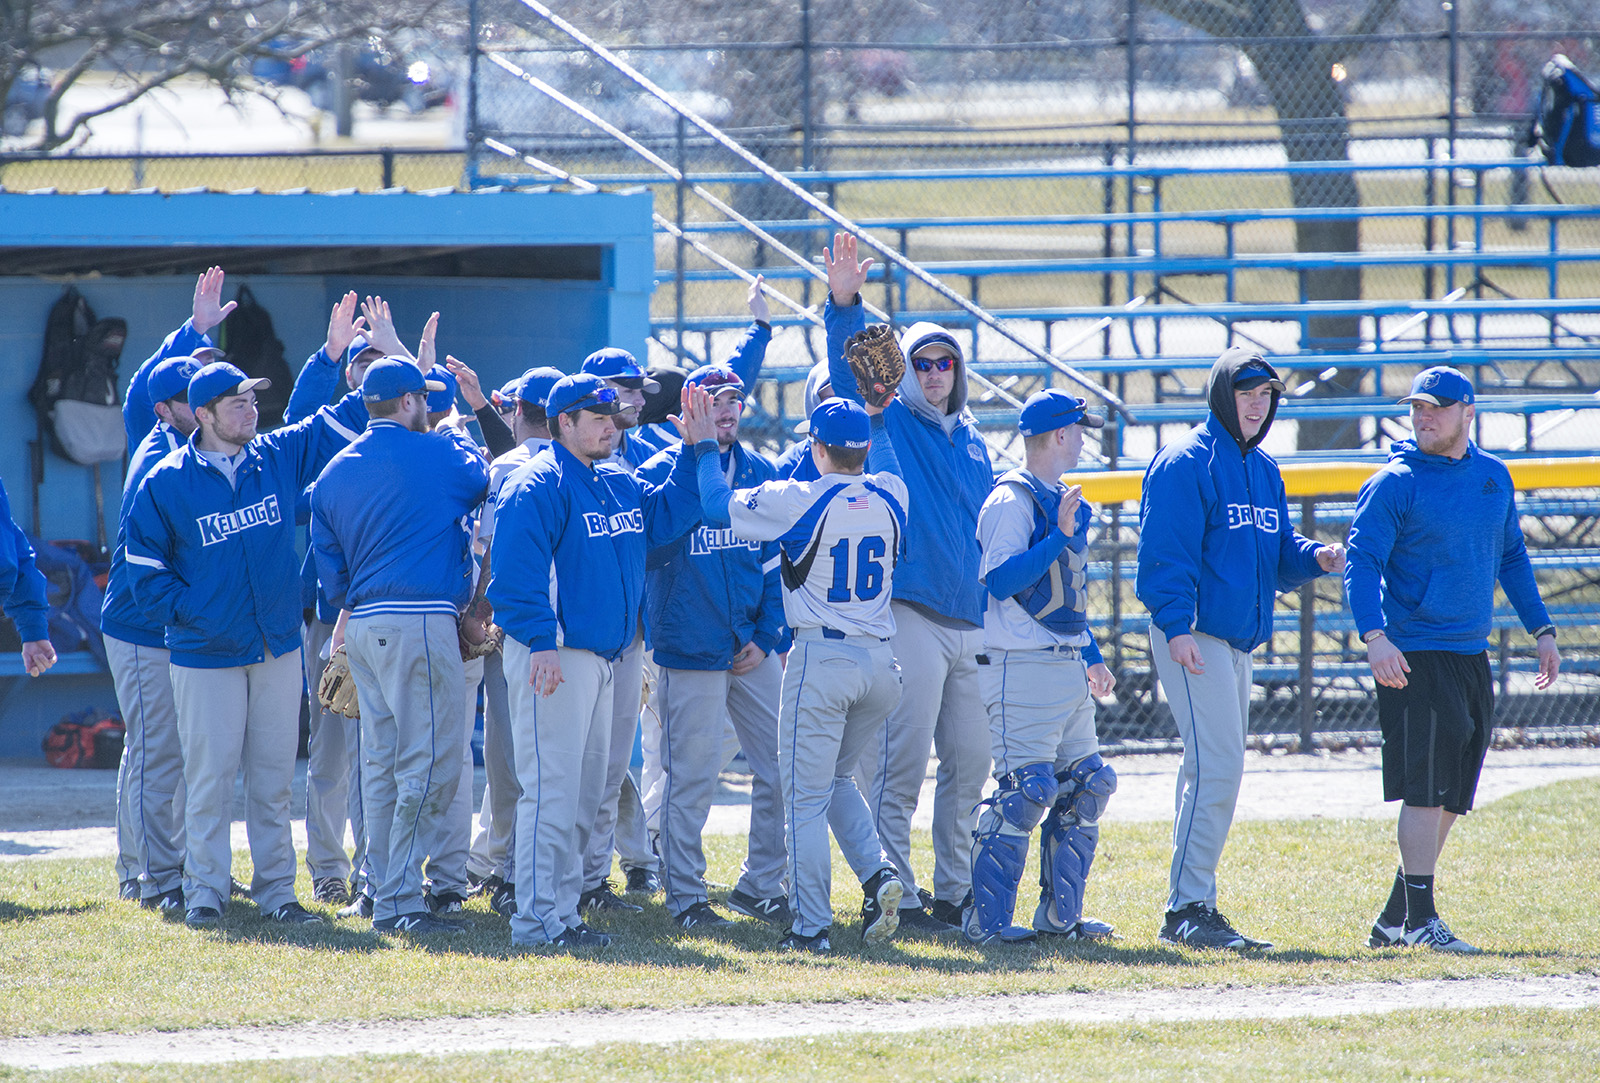 Members of KCC's baseball team congratulate players returning from the field between innings during a home game at Bailey Park in Battle Creek.